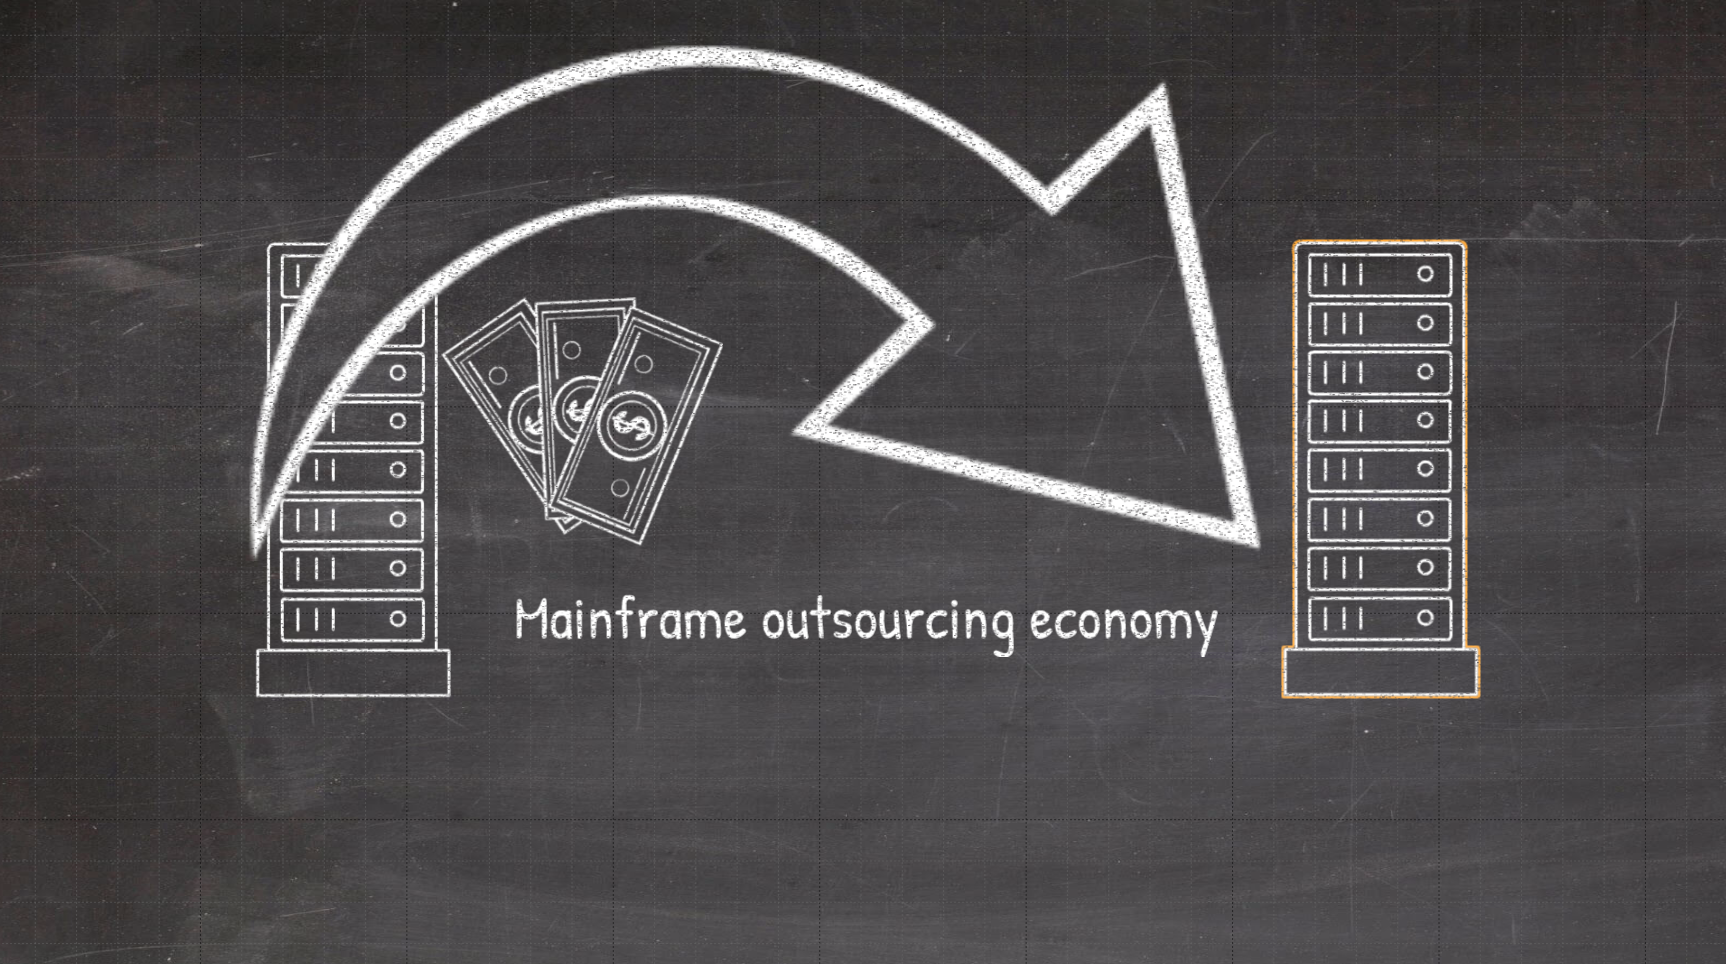 Mainframe outsourcing economy title slide